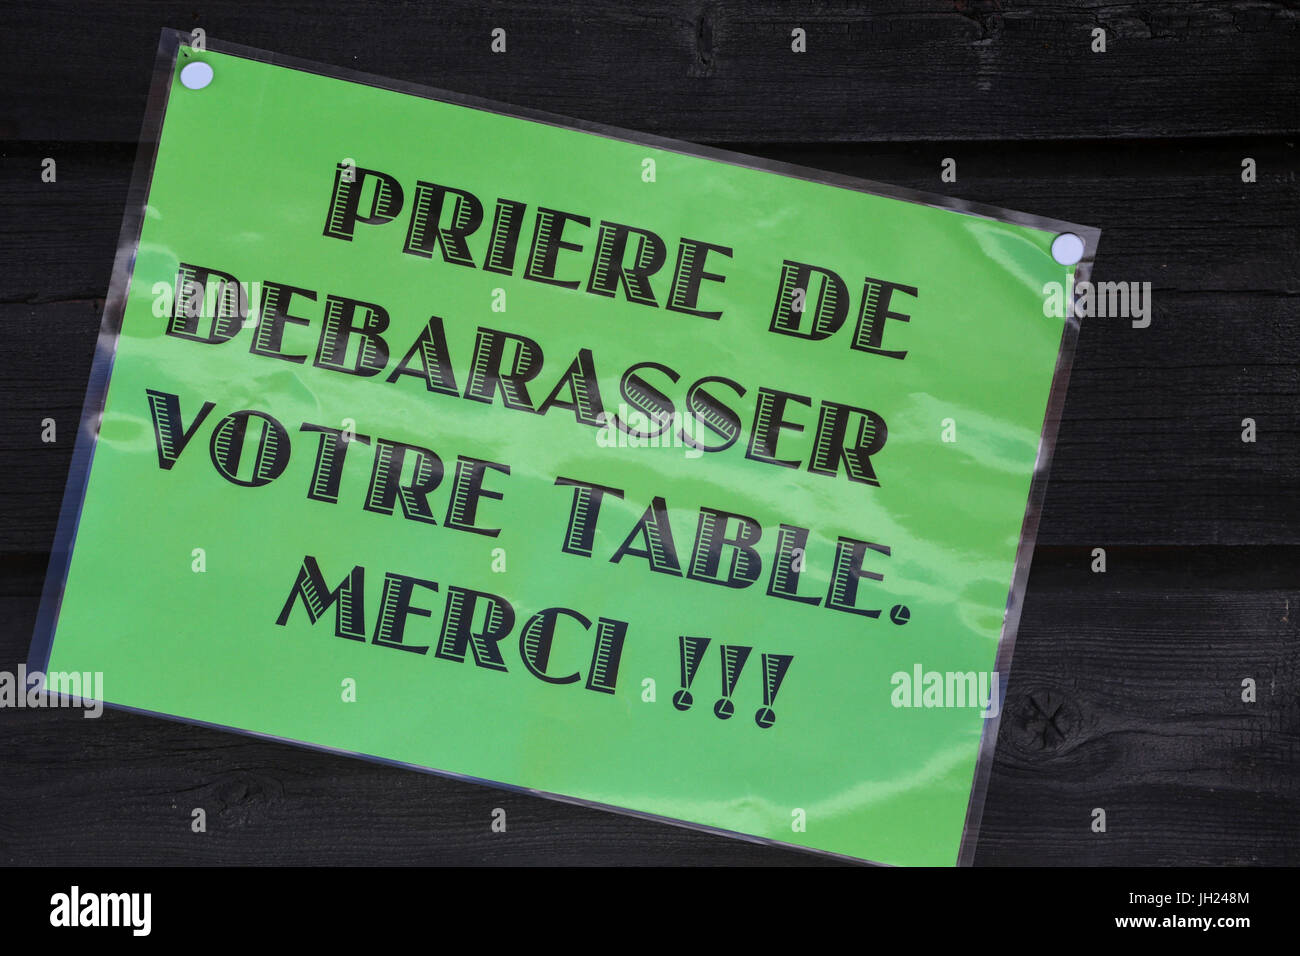 L'uo votre table. Restaurant sign. La France. Photo Stock